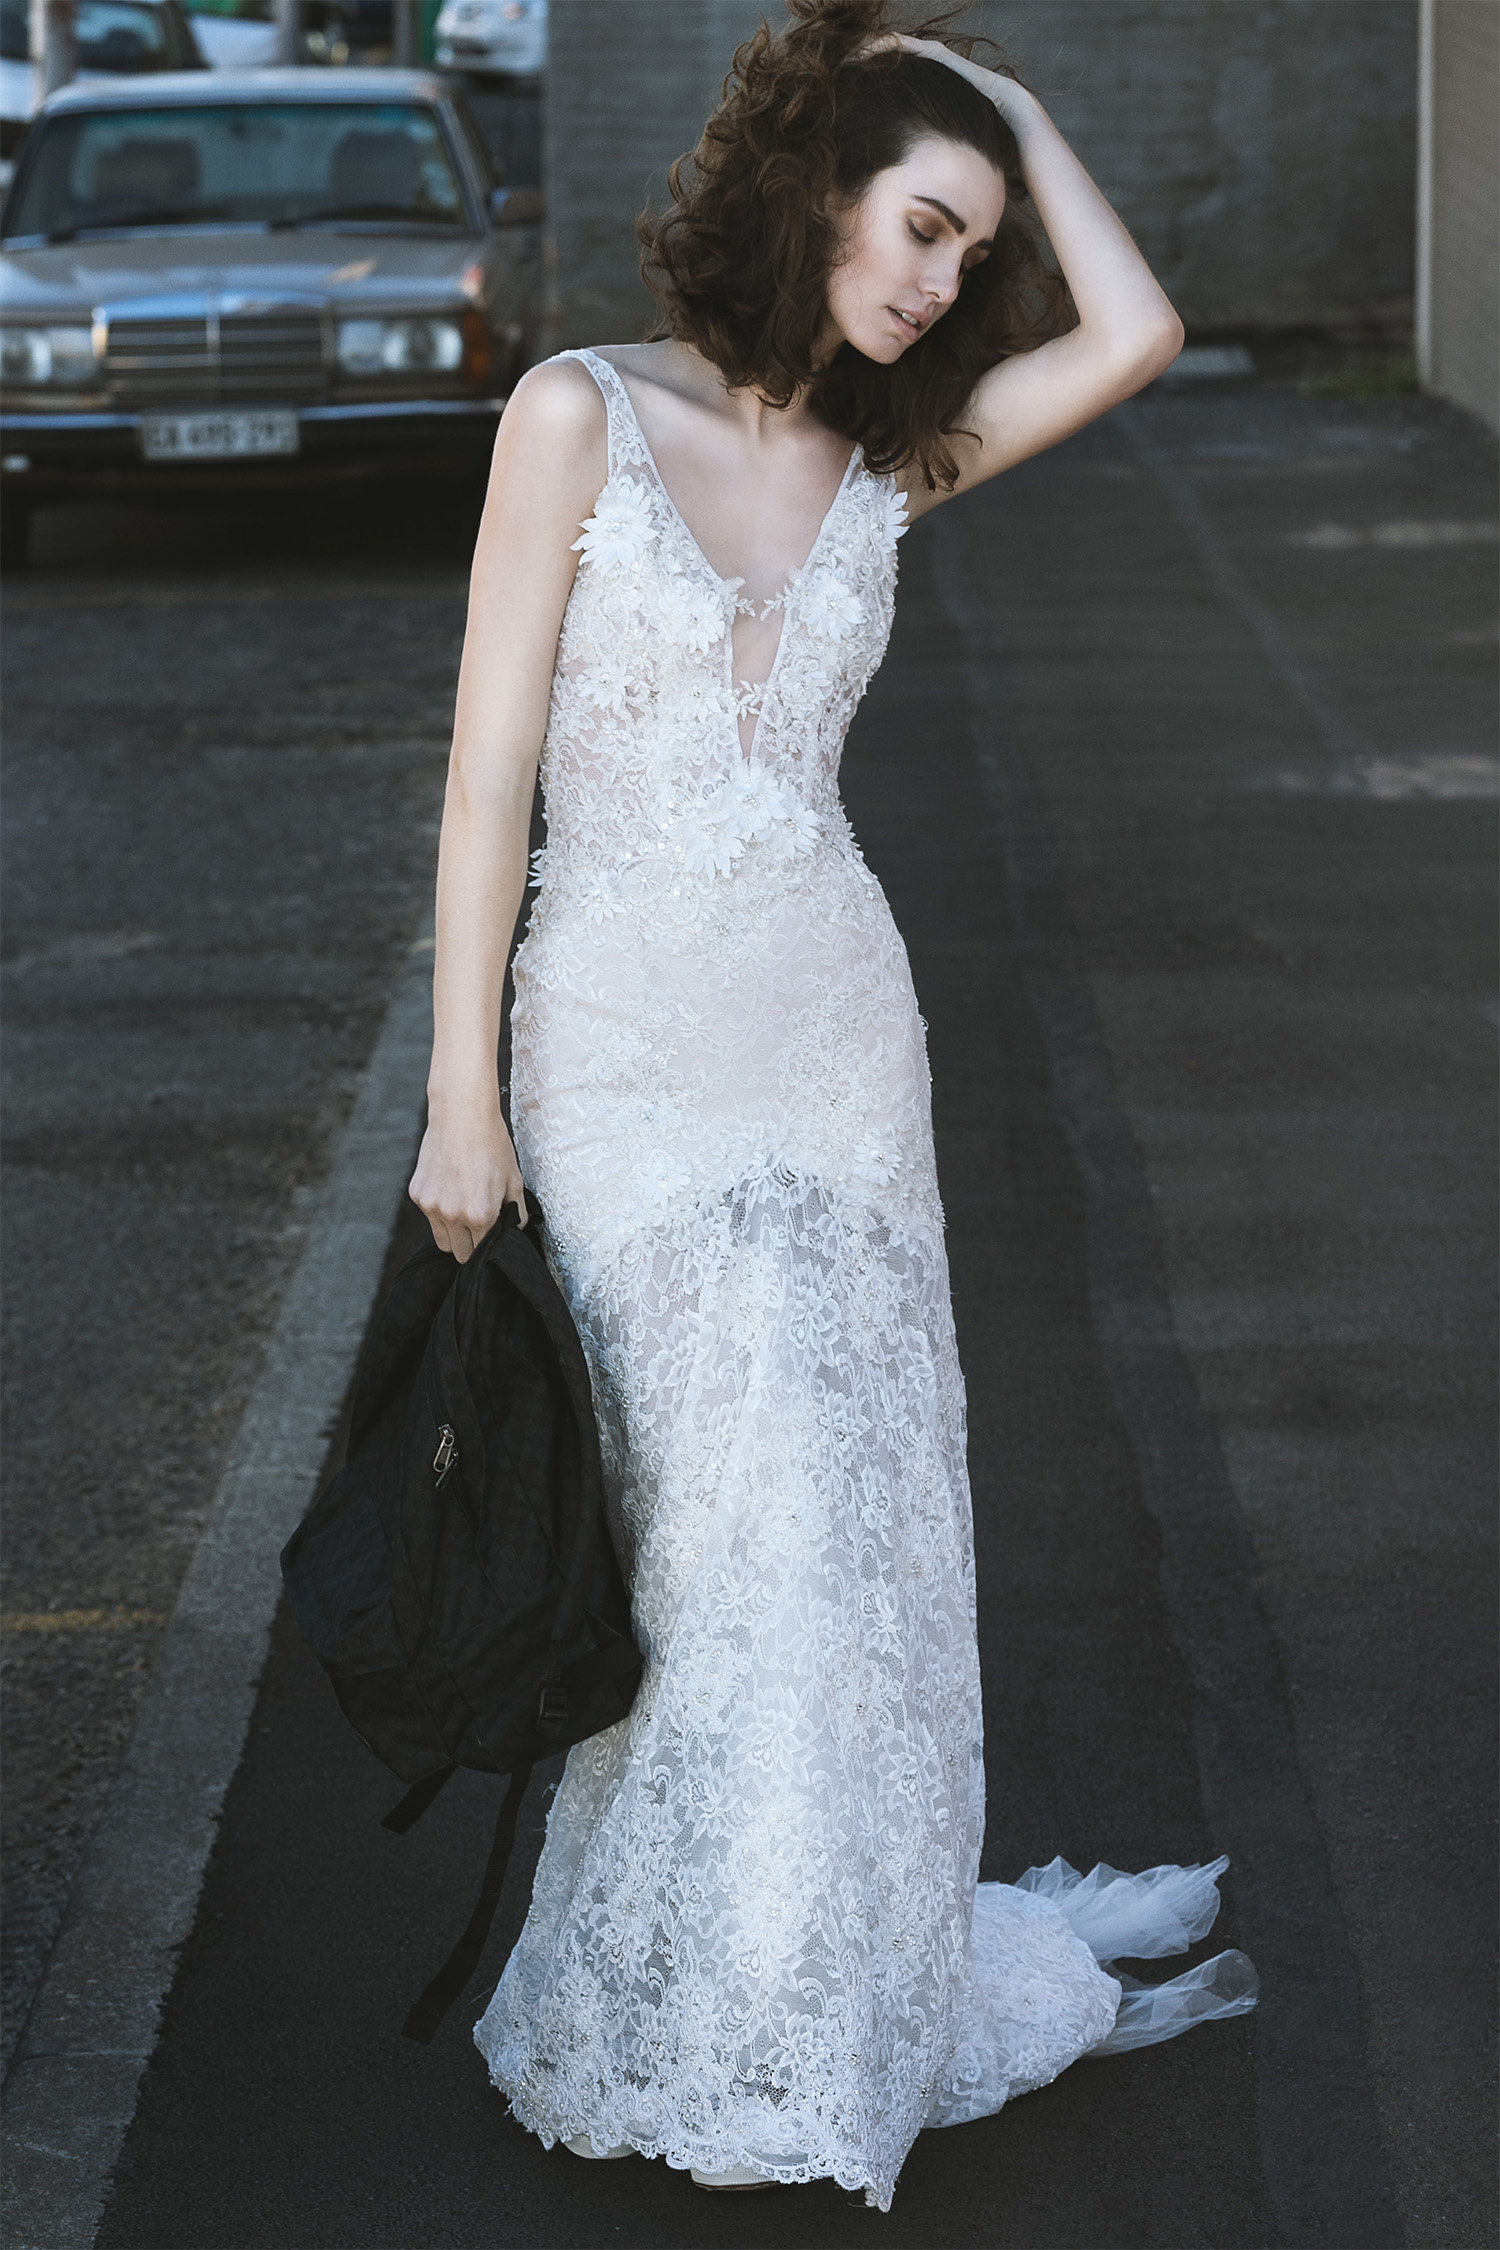 Vintage lace gown with 3D flowers and sheer low back,Cindy Bam; bag, Vans